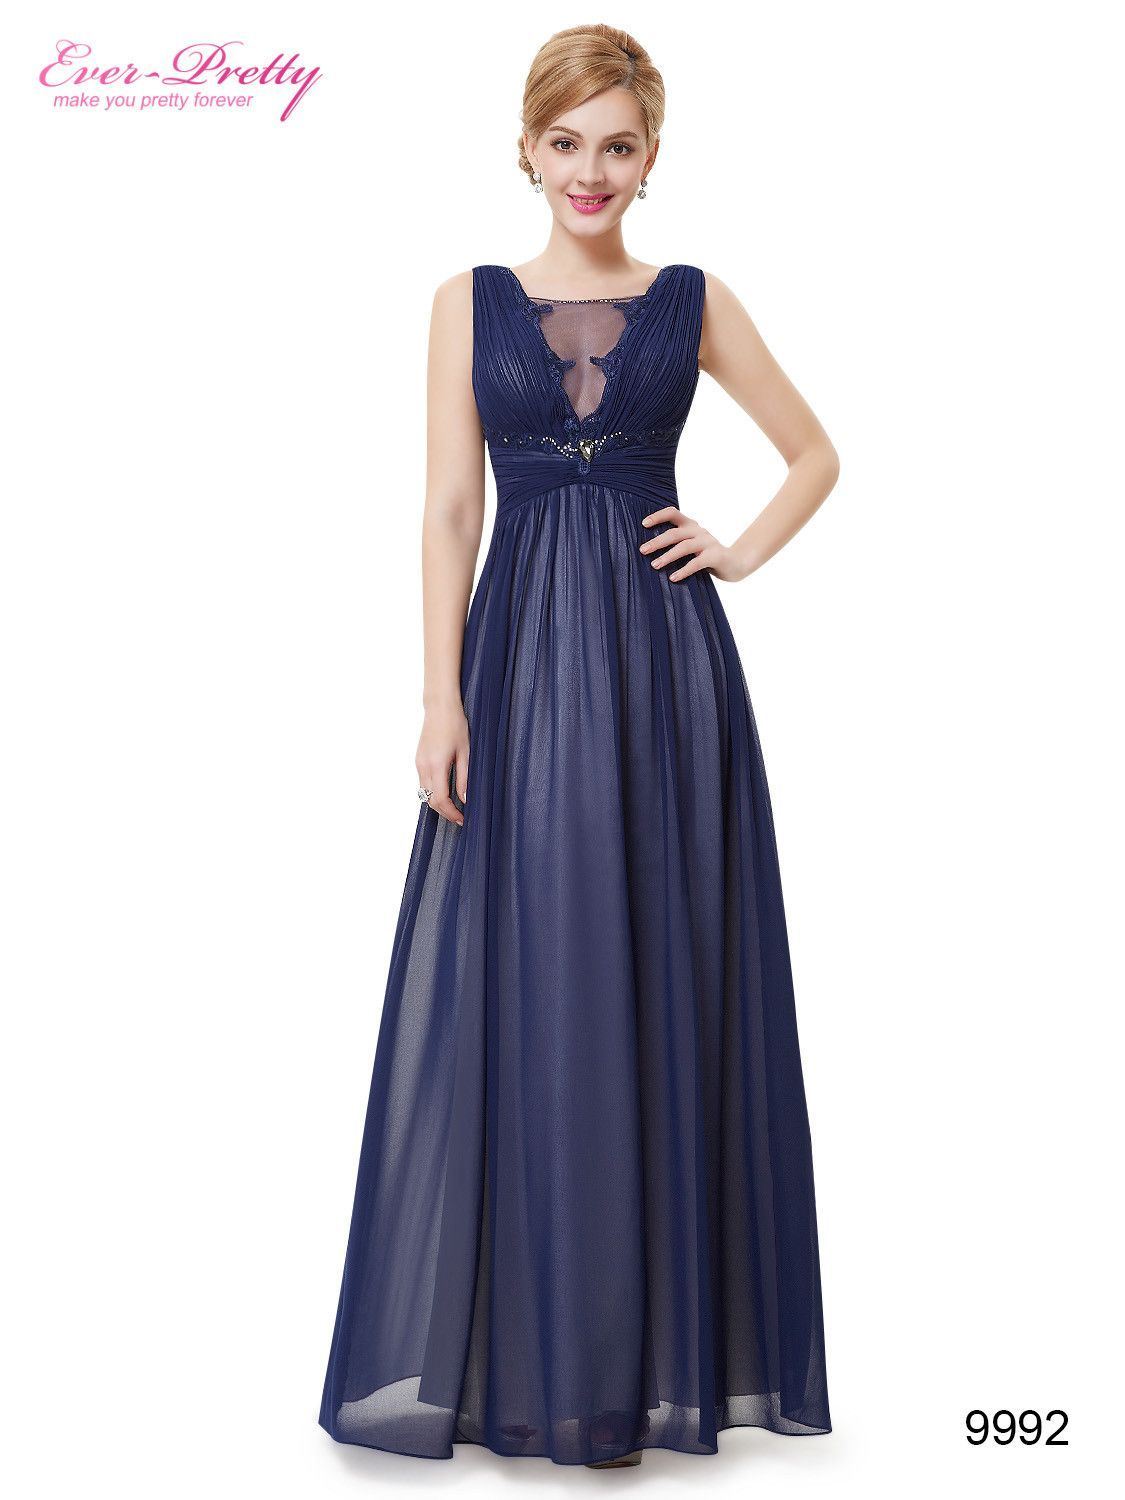 1caee2d3232d Occasion: Formal Evening Item Type: Evening Dresses Waistline: Empire  is_customized: No Fabric Type: Chiffon Dresses Length: Ankle-Length  Neckline: V-Neck ...